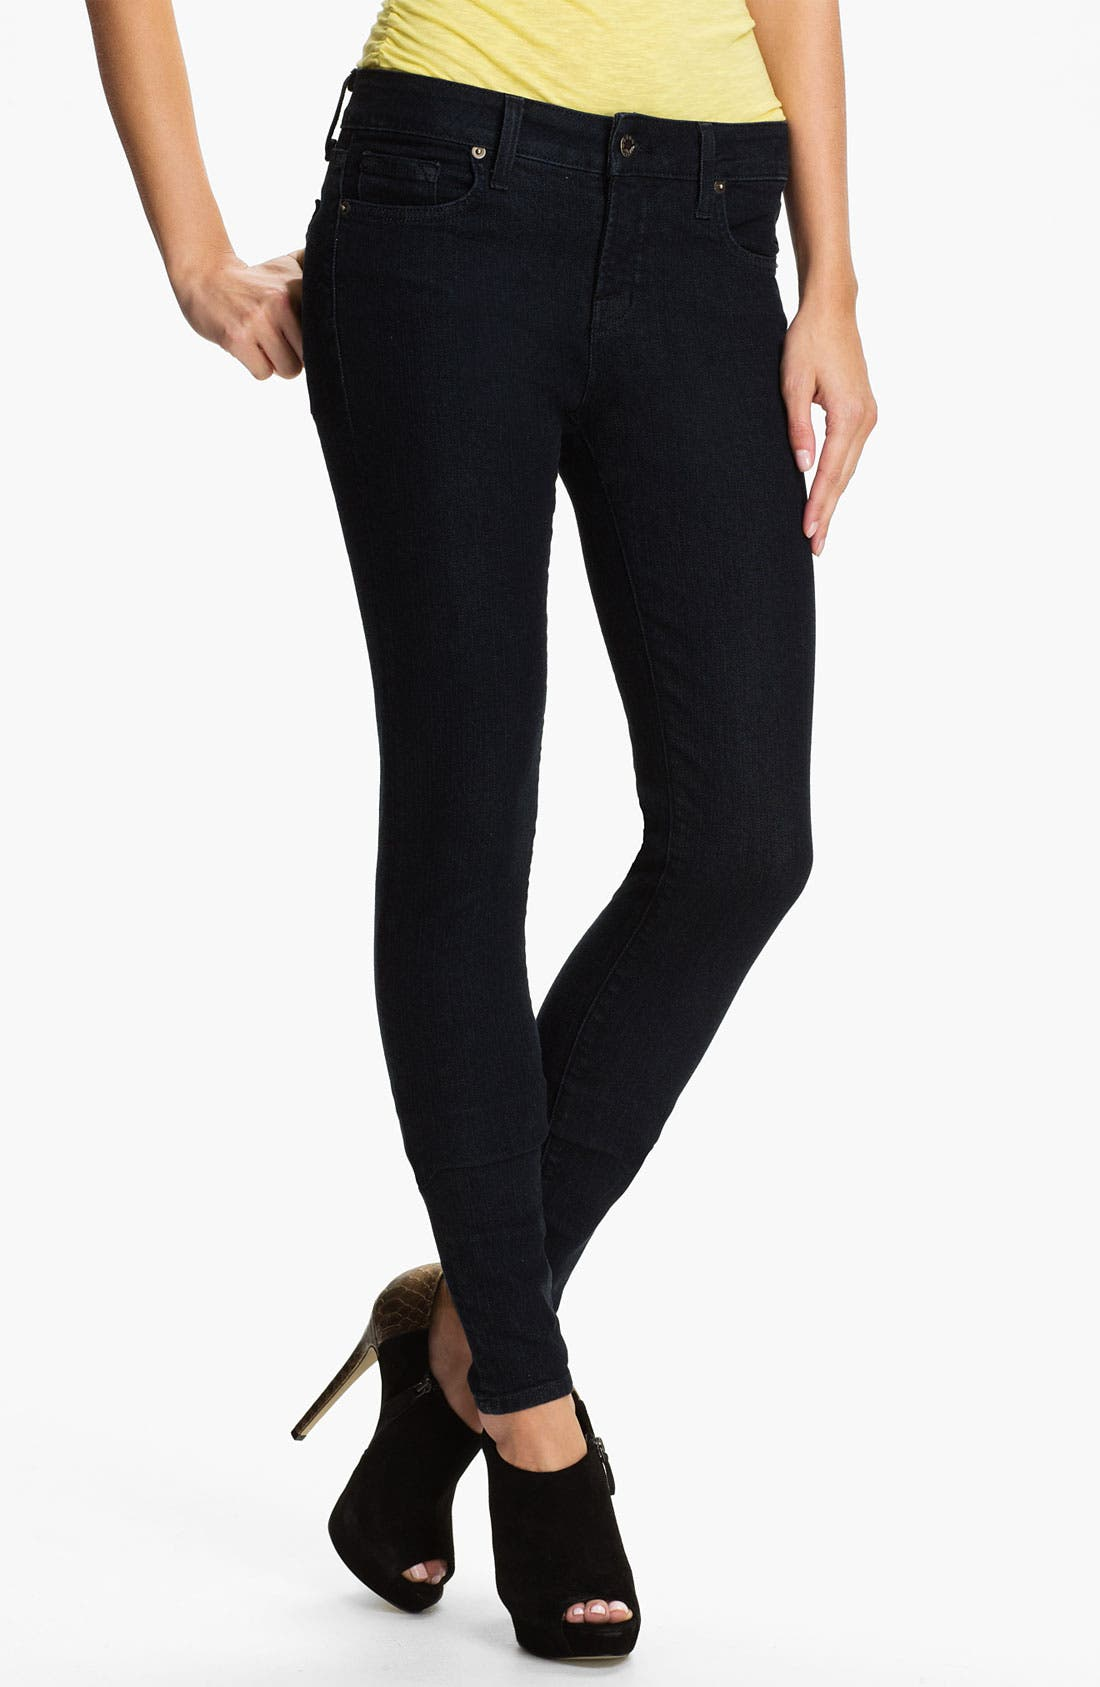 Alternate Image 1 Selected - Blue Essence Skinny Jeans (Nordstrom Exclusive)